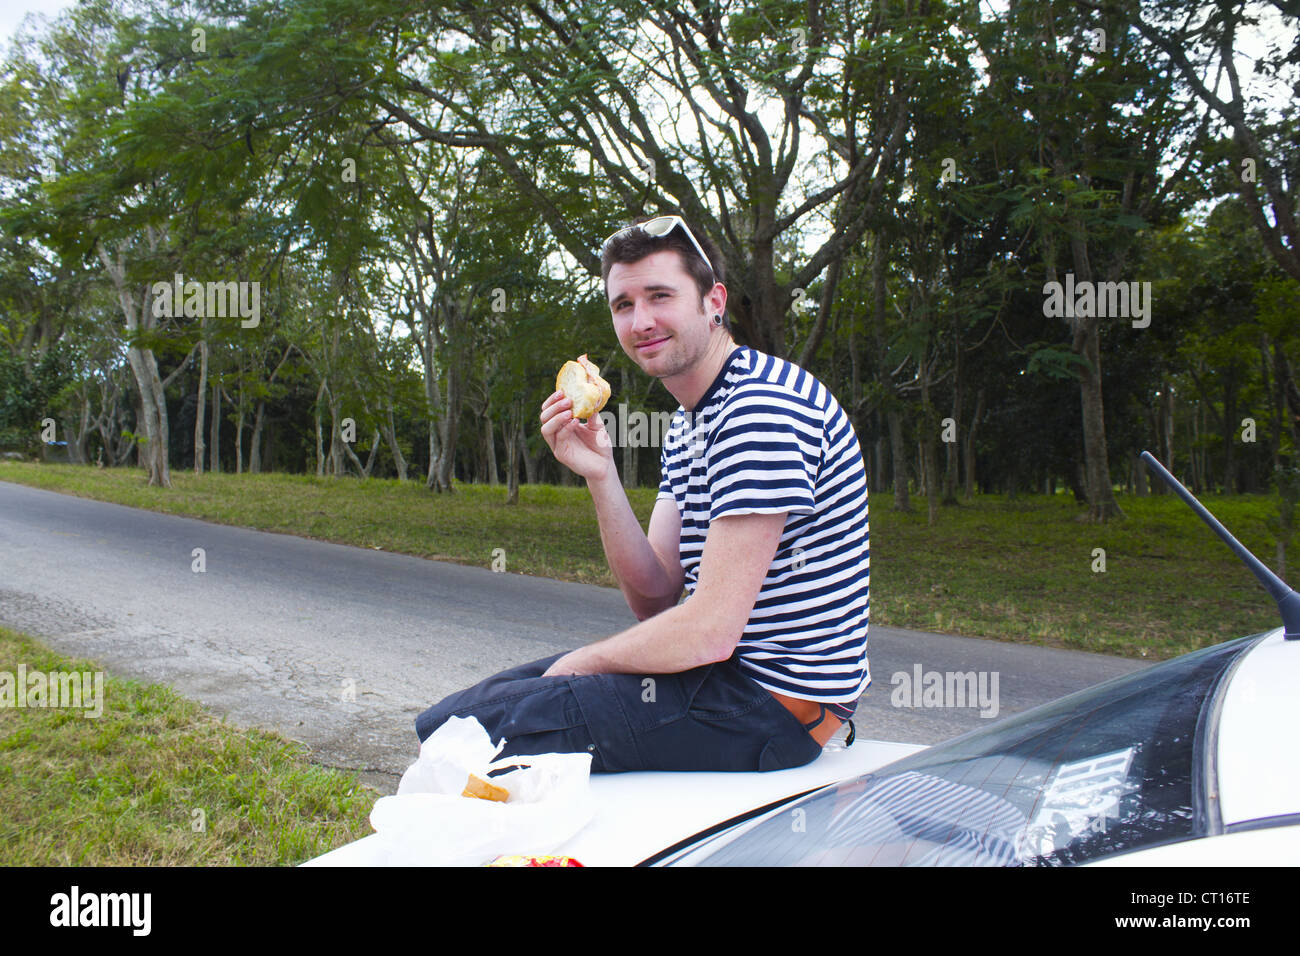 Man eating sandwich on trunk of car - Stock Image